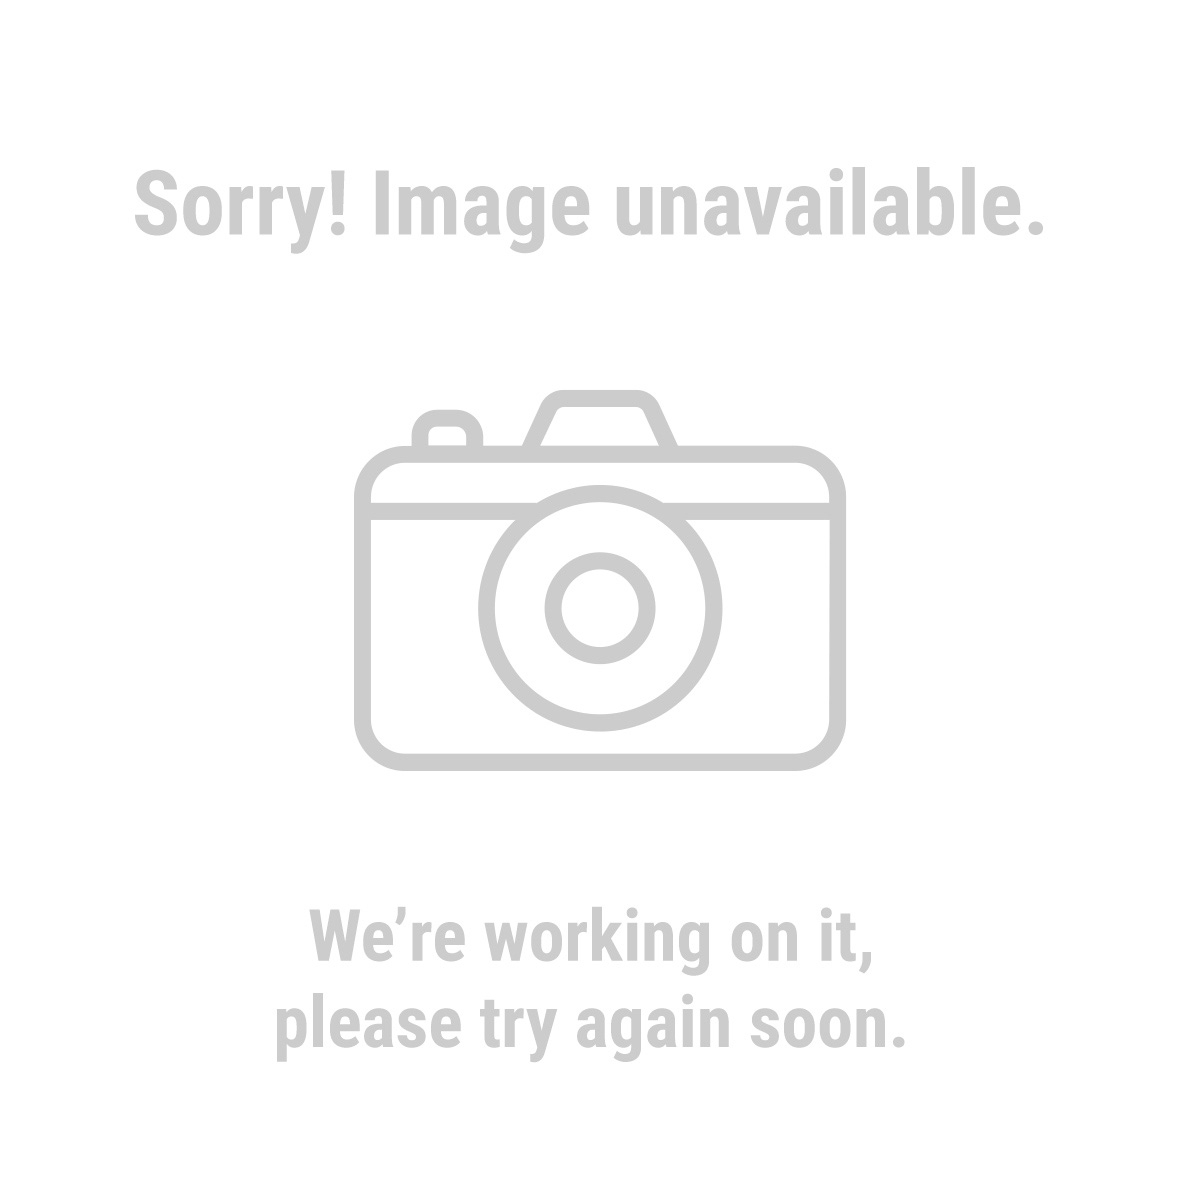 Pittsburgh Automotive 2792 1500 Lb. Capacity ATV/Motorcycle Lift